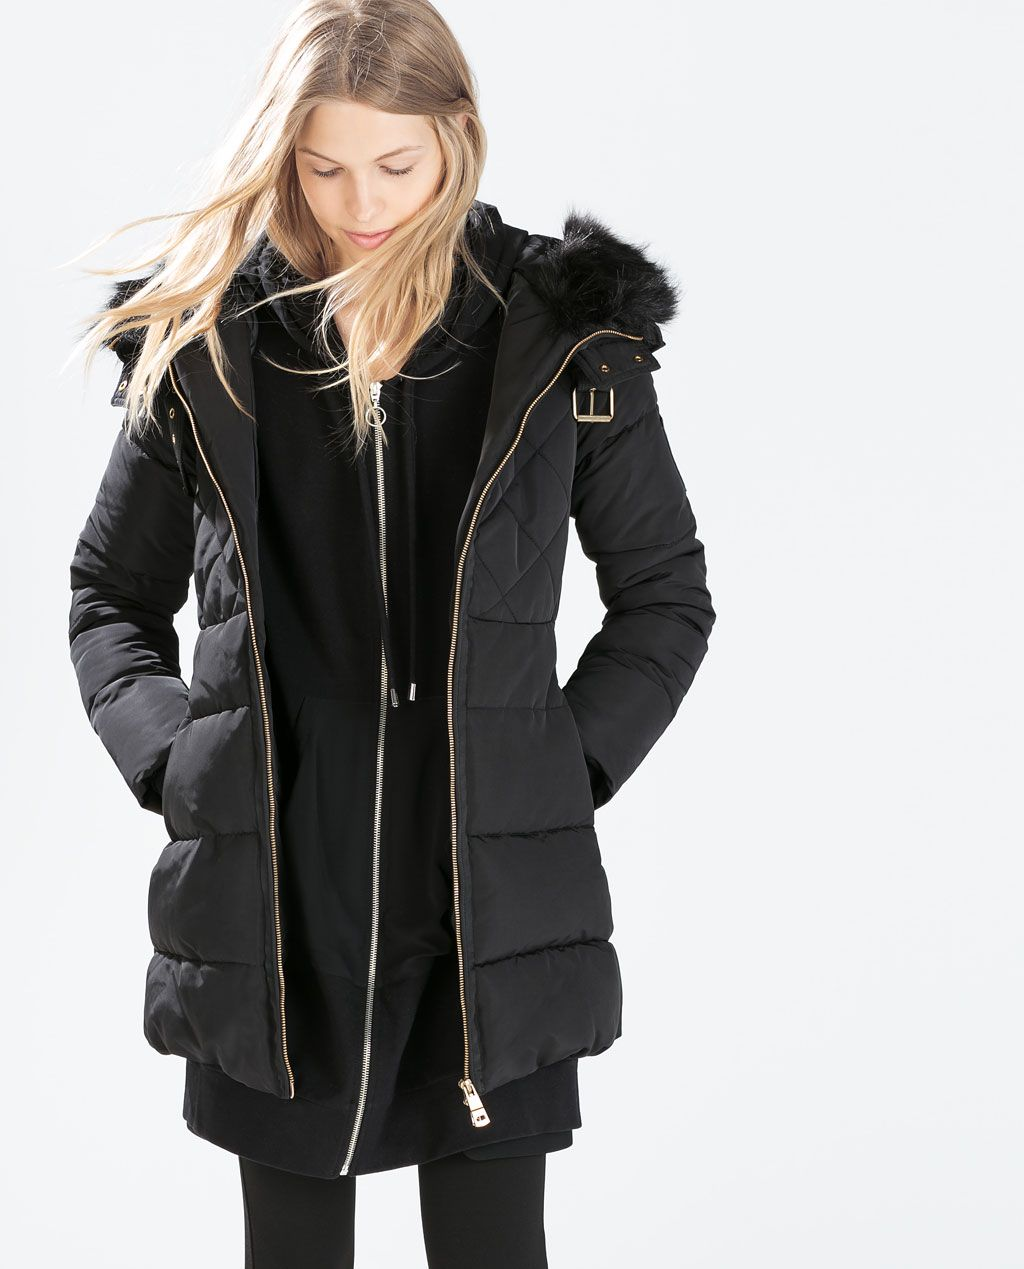 MIDLENGTH DOWN JACKET WITH FUR COLLAR from Zara Jackets